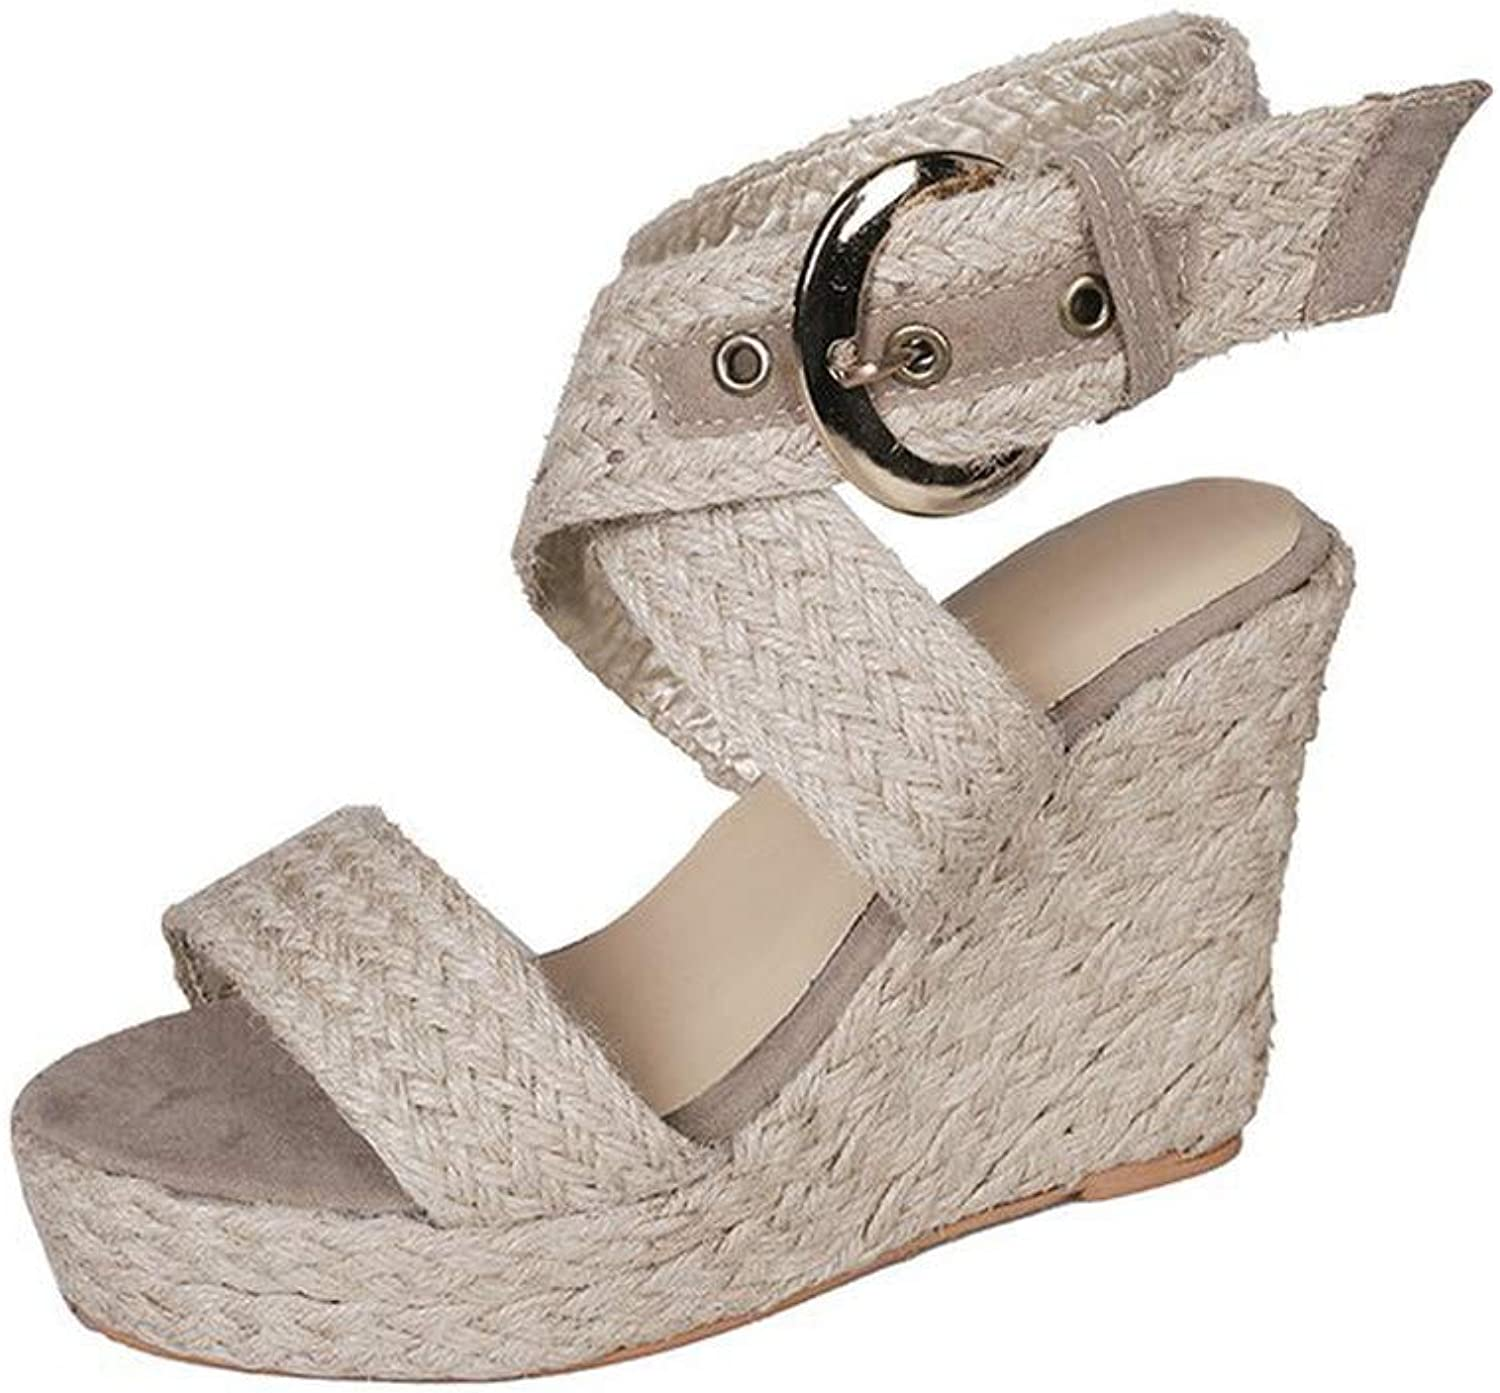 WTKRSM Women's Buckle with Wedge Sandals Open Toe Knit Upper Fashion Sandals